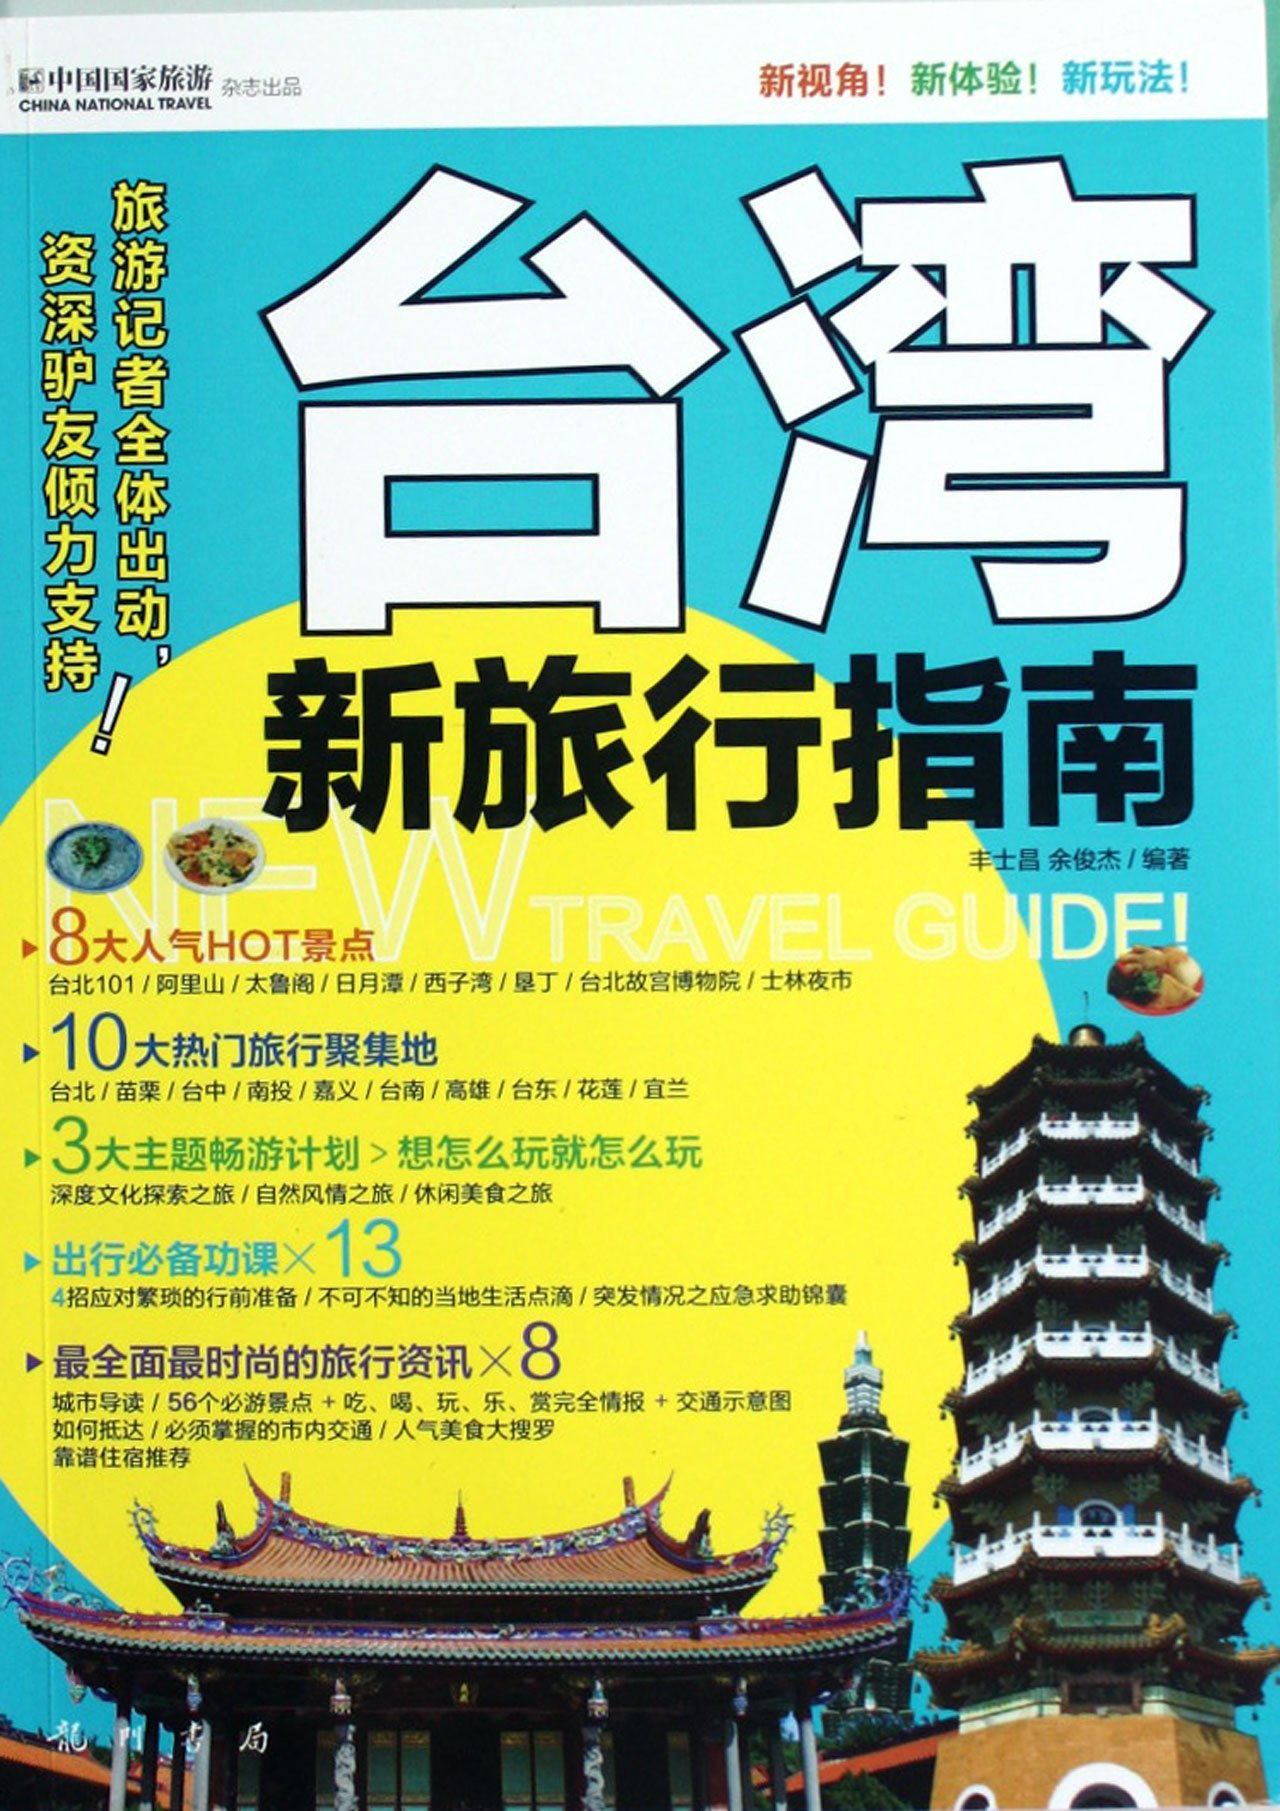 New Travel Guidance of Taiwan (Chinese Edition)